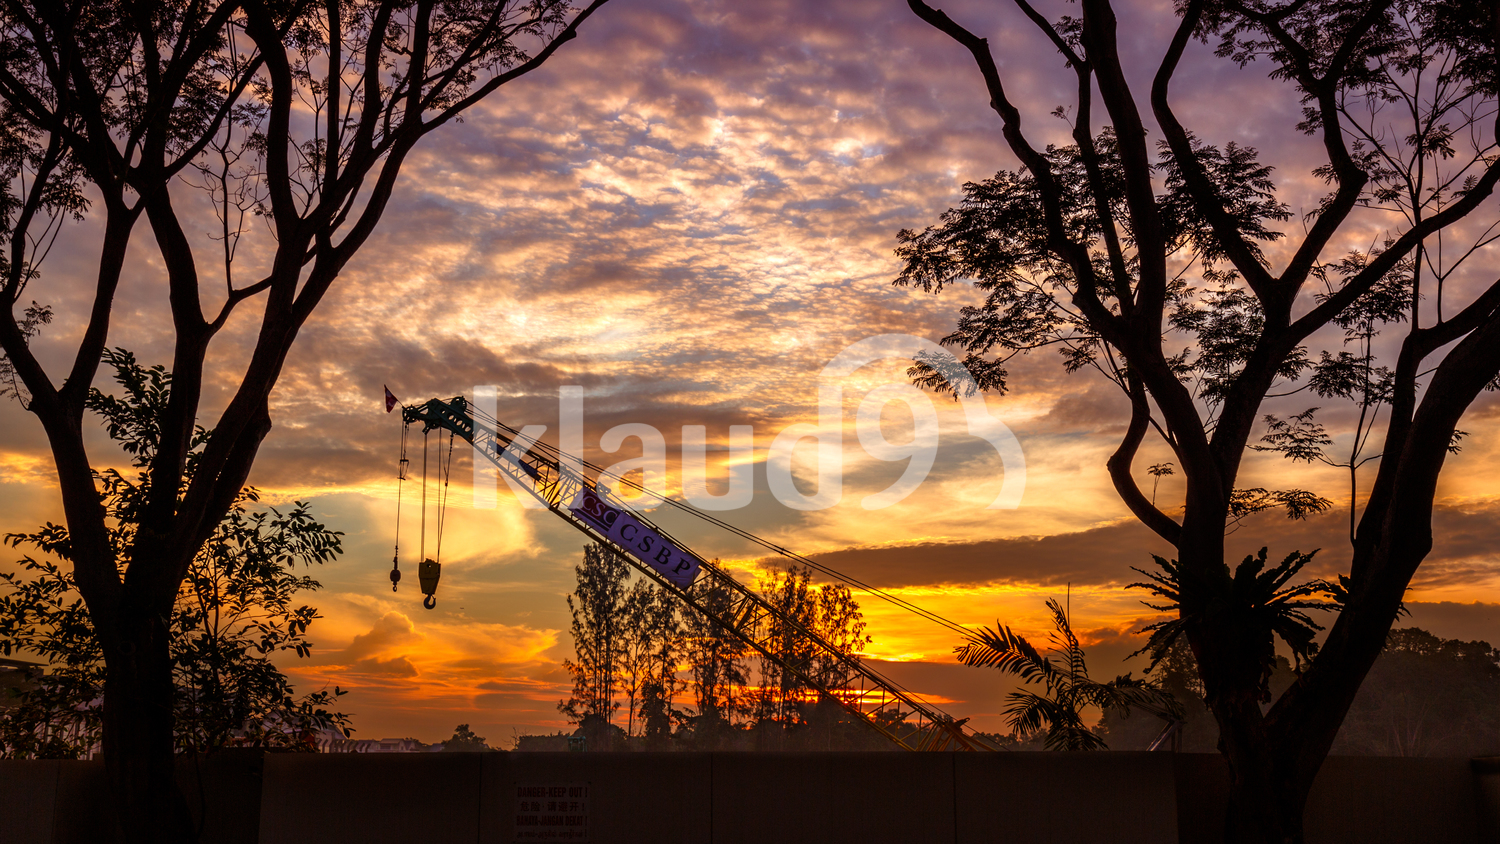 Sunrise over a construction site